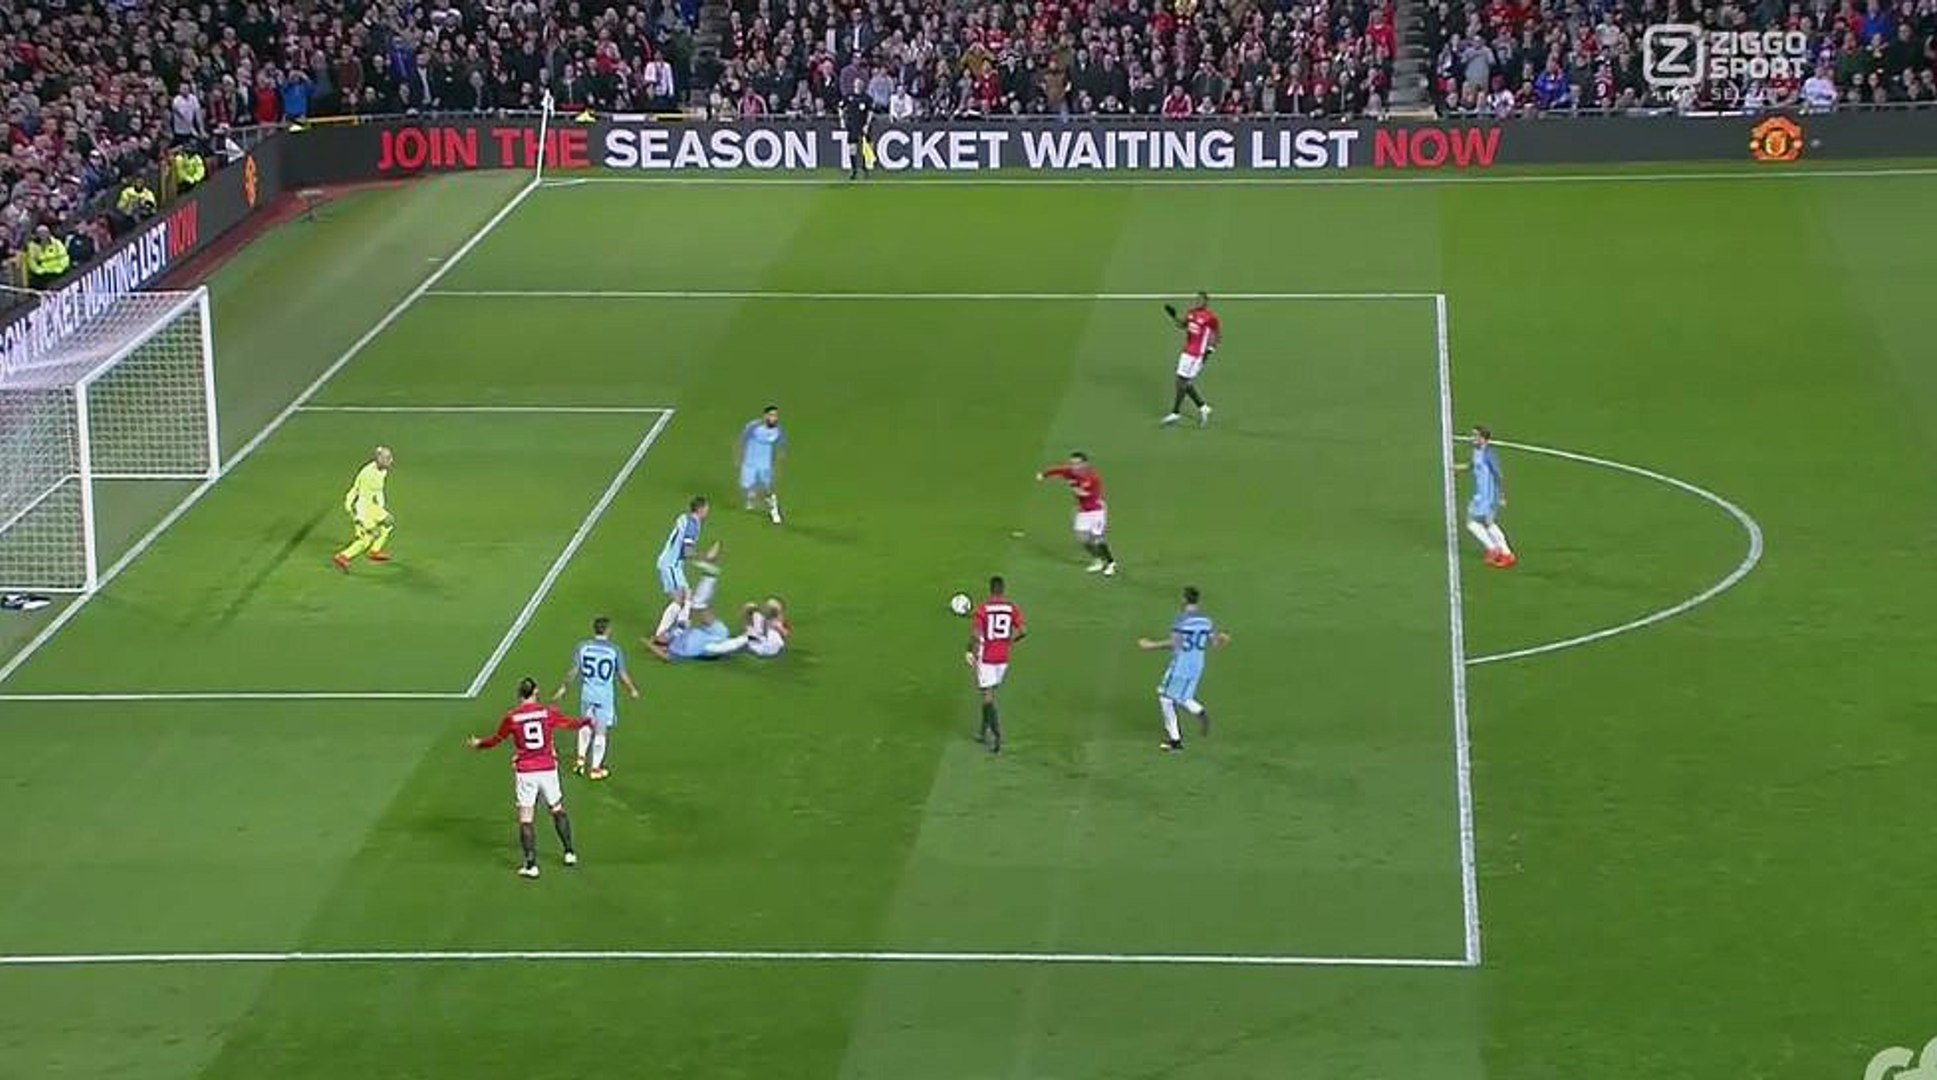 Goal Juan Mata 1-0 HD - Manchester United 1 vs Manchester City 0 - English League Cup - 26/10/2016